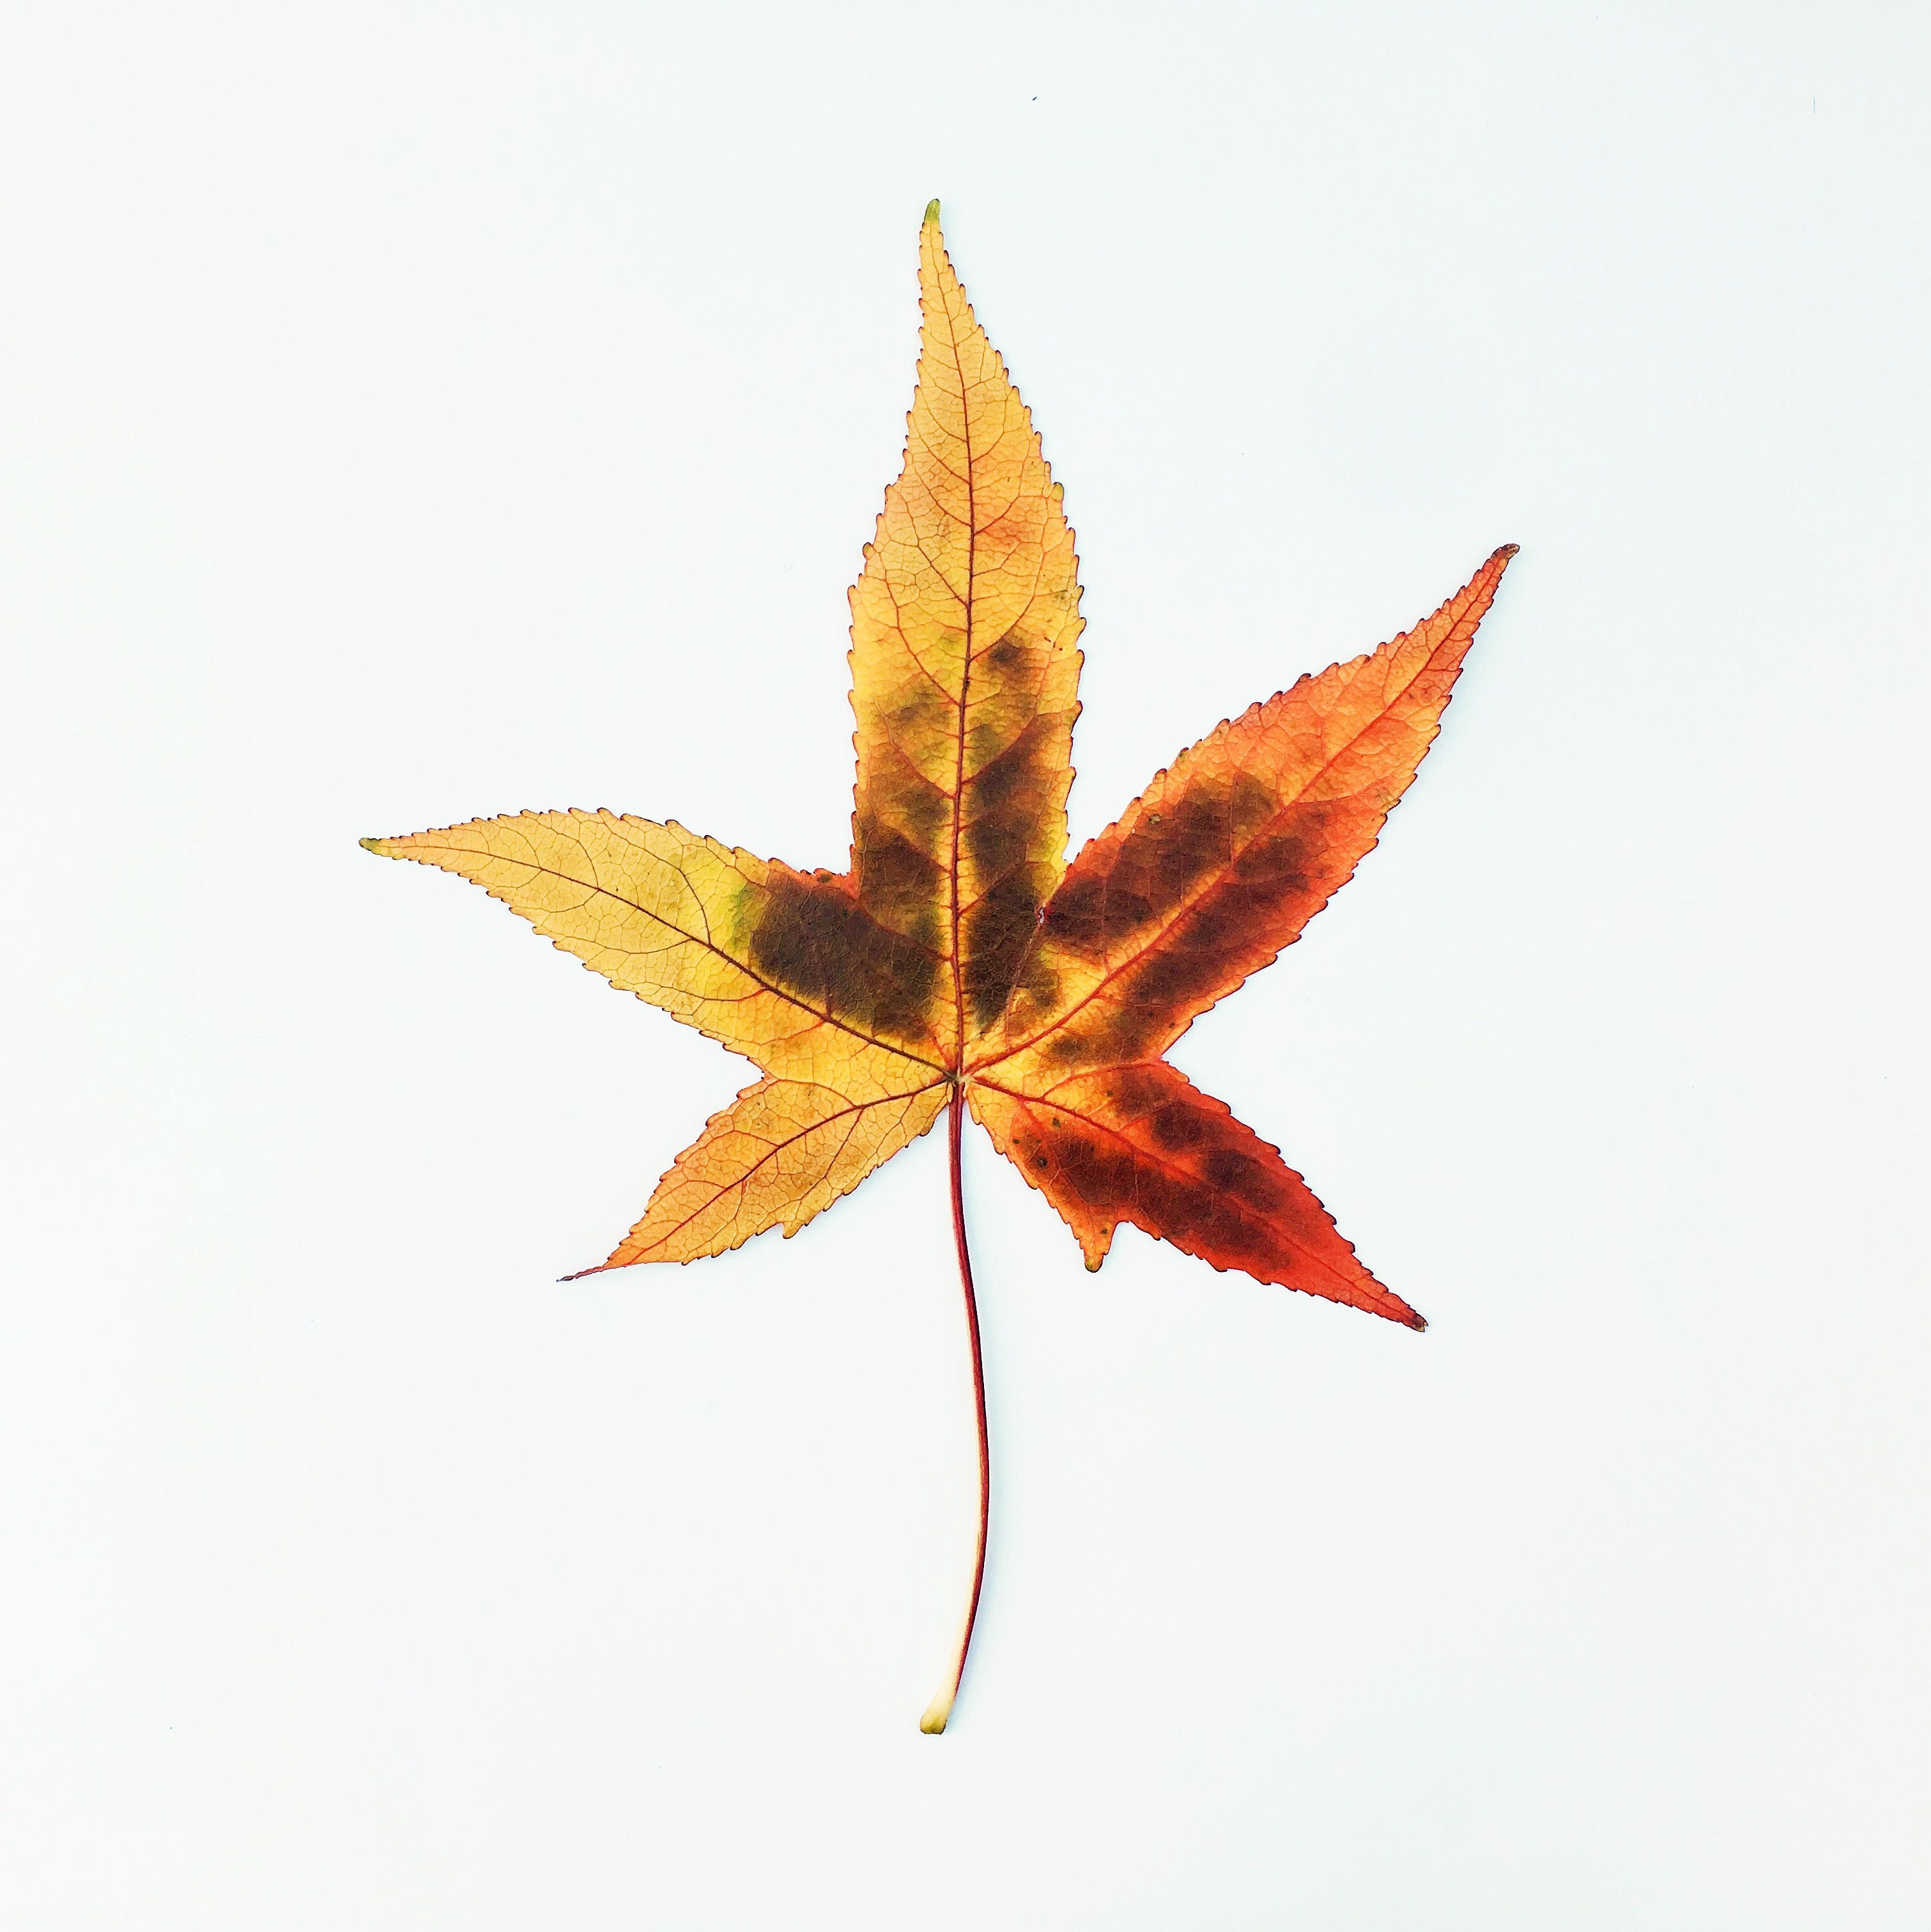 Leaf 34 Of The 1 000 Autumn Leaves Project Showcasing Sweet Gum